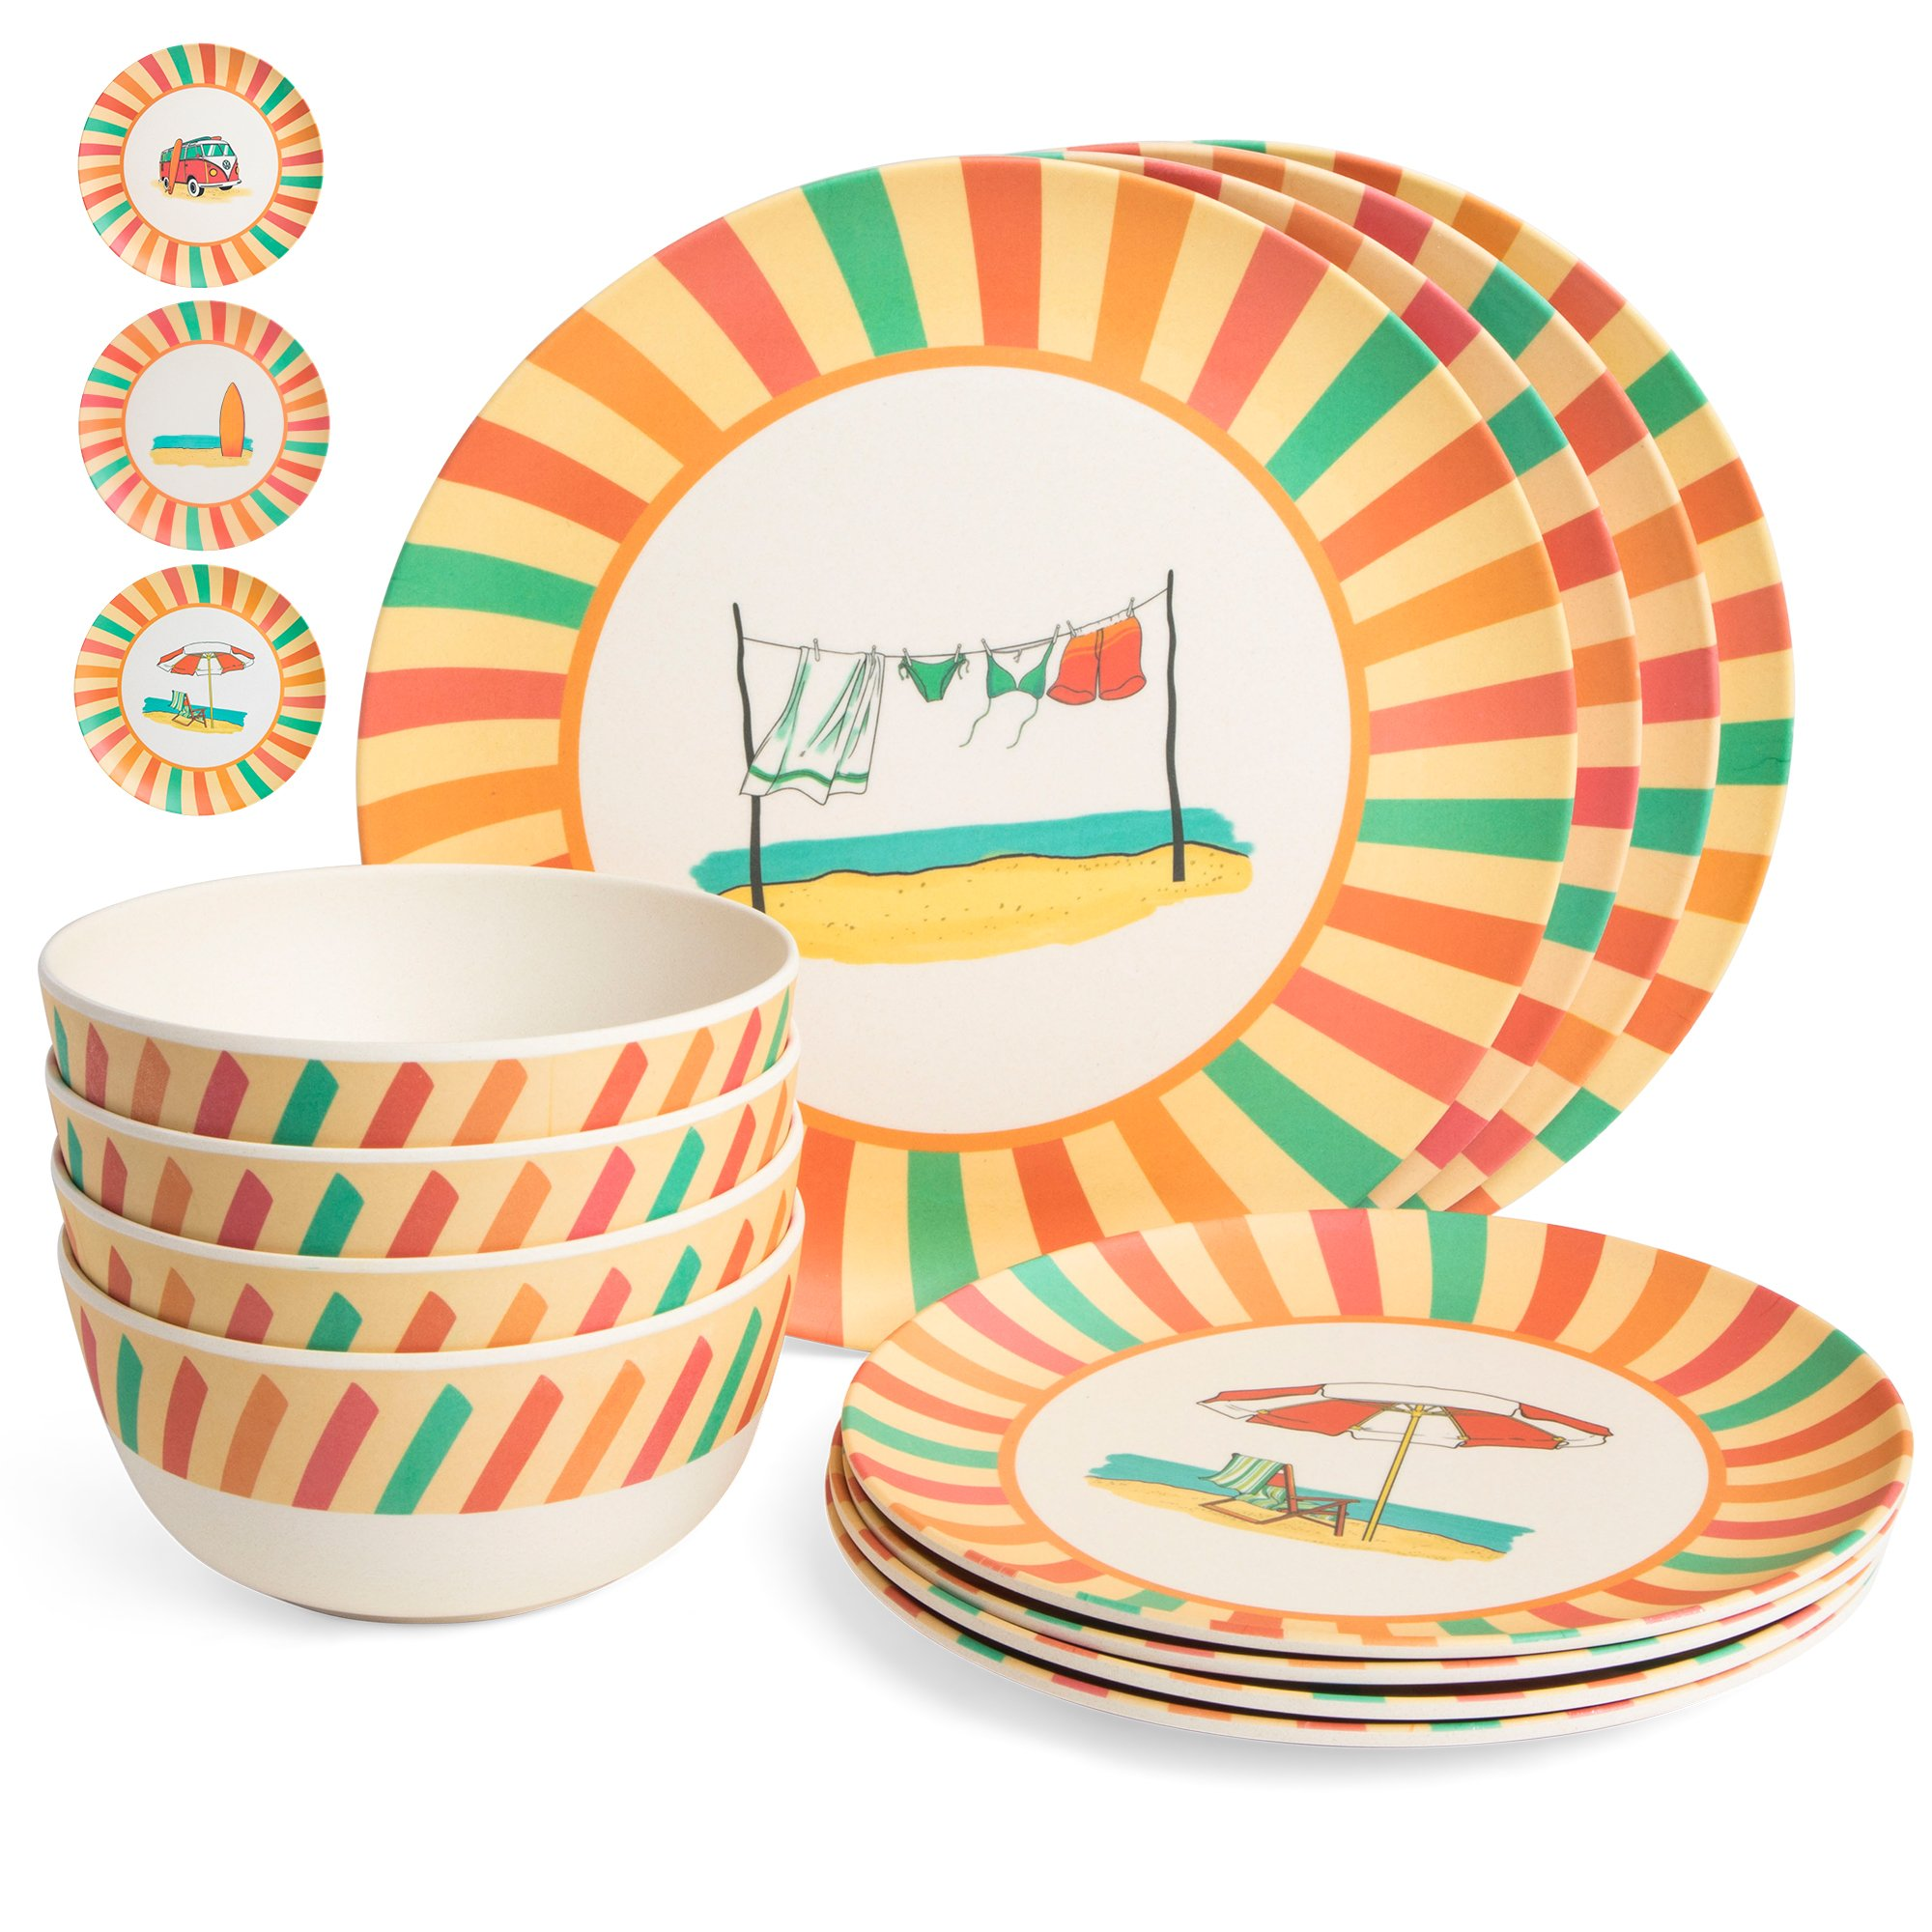 Bamboo Dinnerware Set - Camping, Kids and Family Reusable Dishes - 4 Small Plates, 4 Bowls, 4 Large Plates - Durable, Lightweight, Eco-Friendly, Non-Toxic - Casual, Retro Dishware, 12 Piece Sets